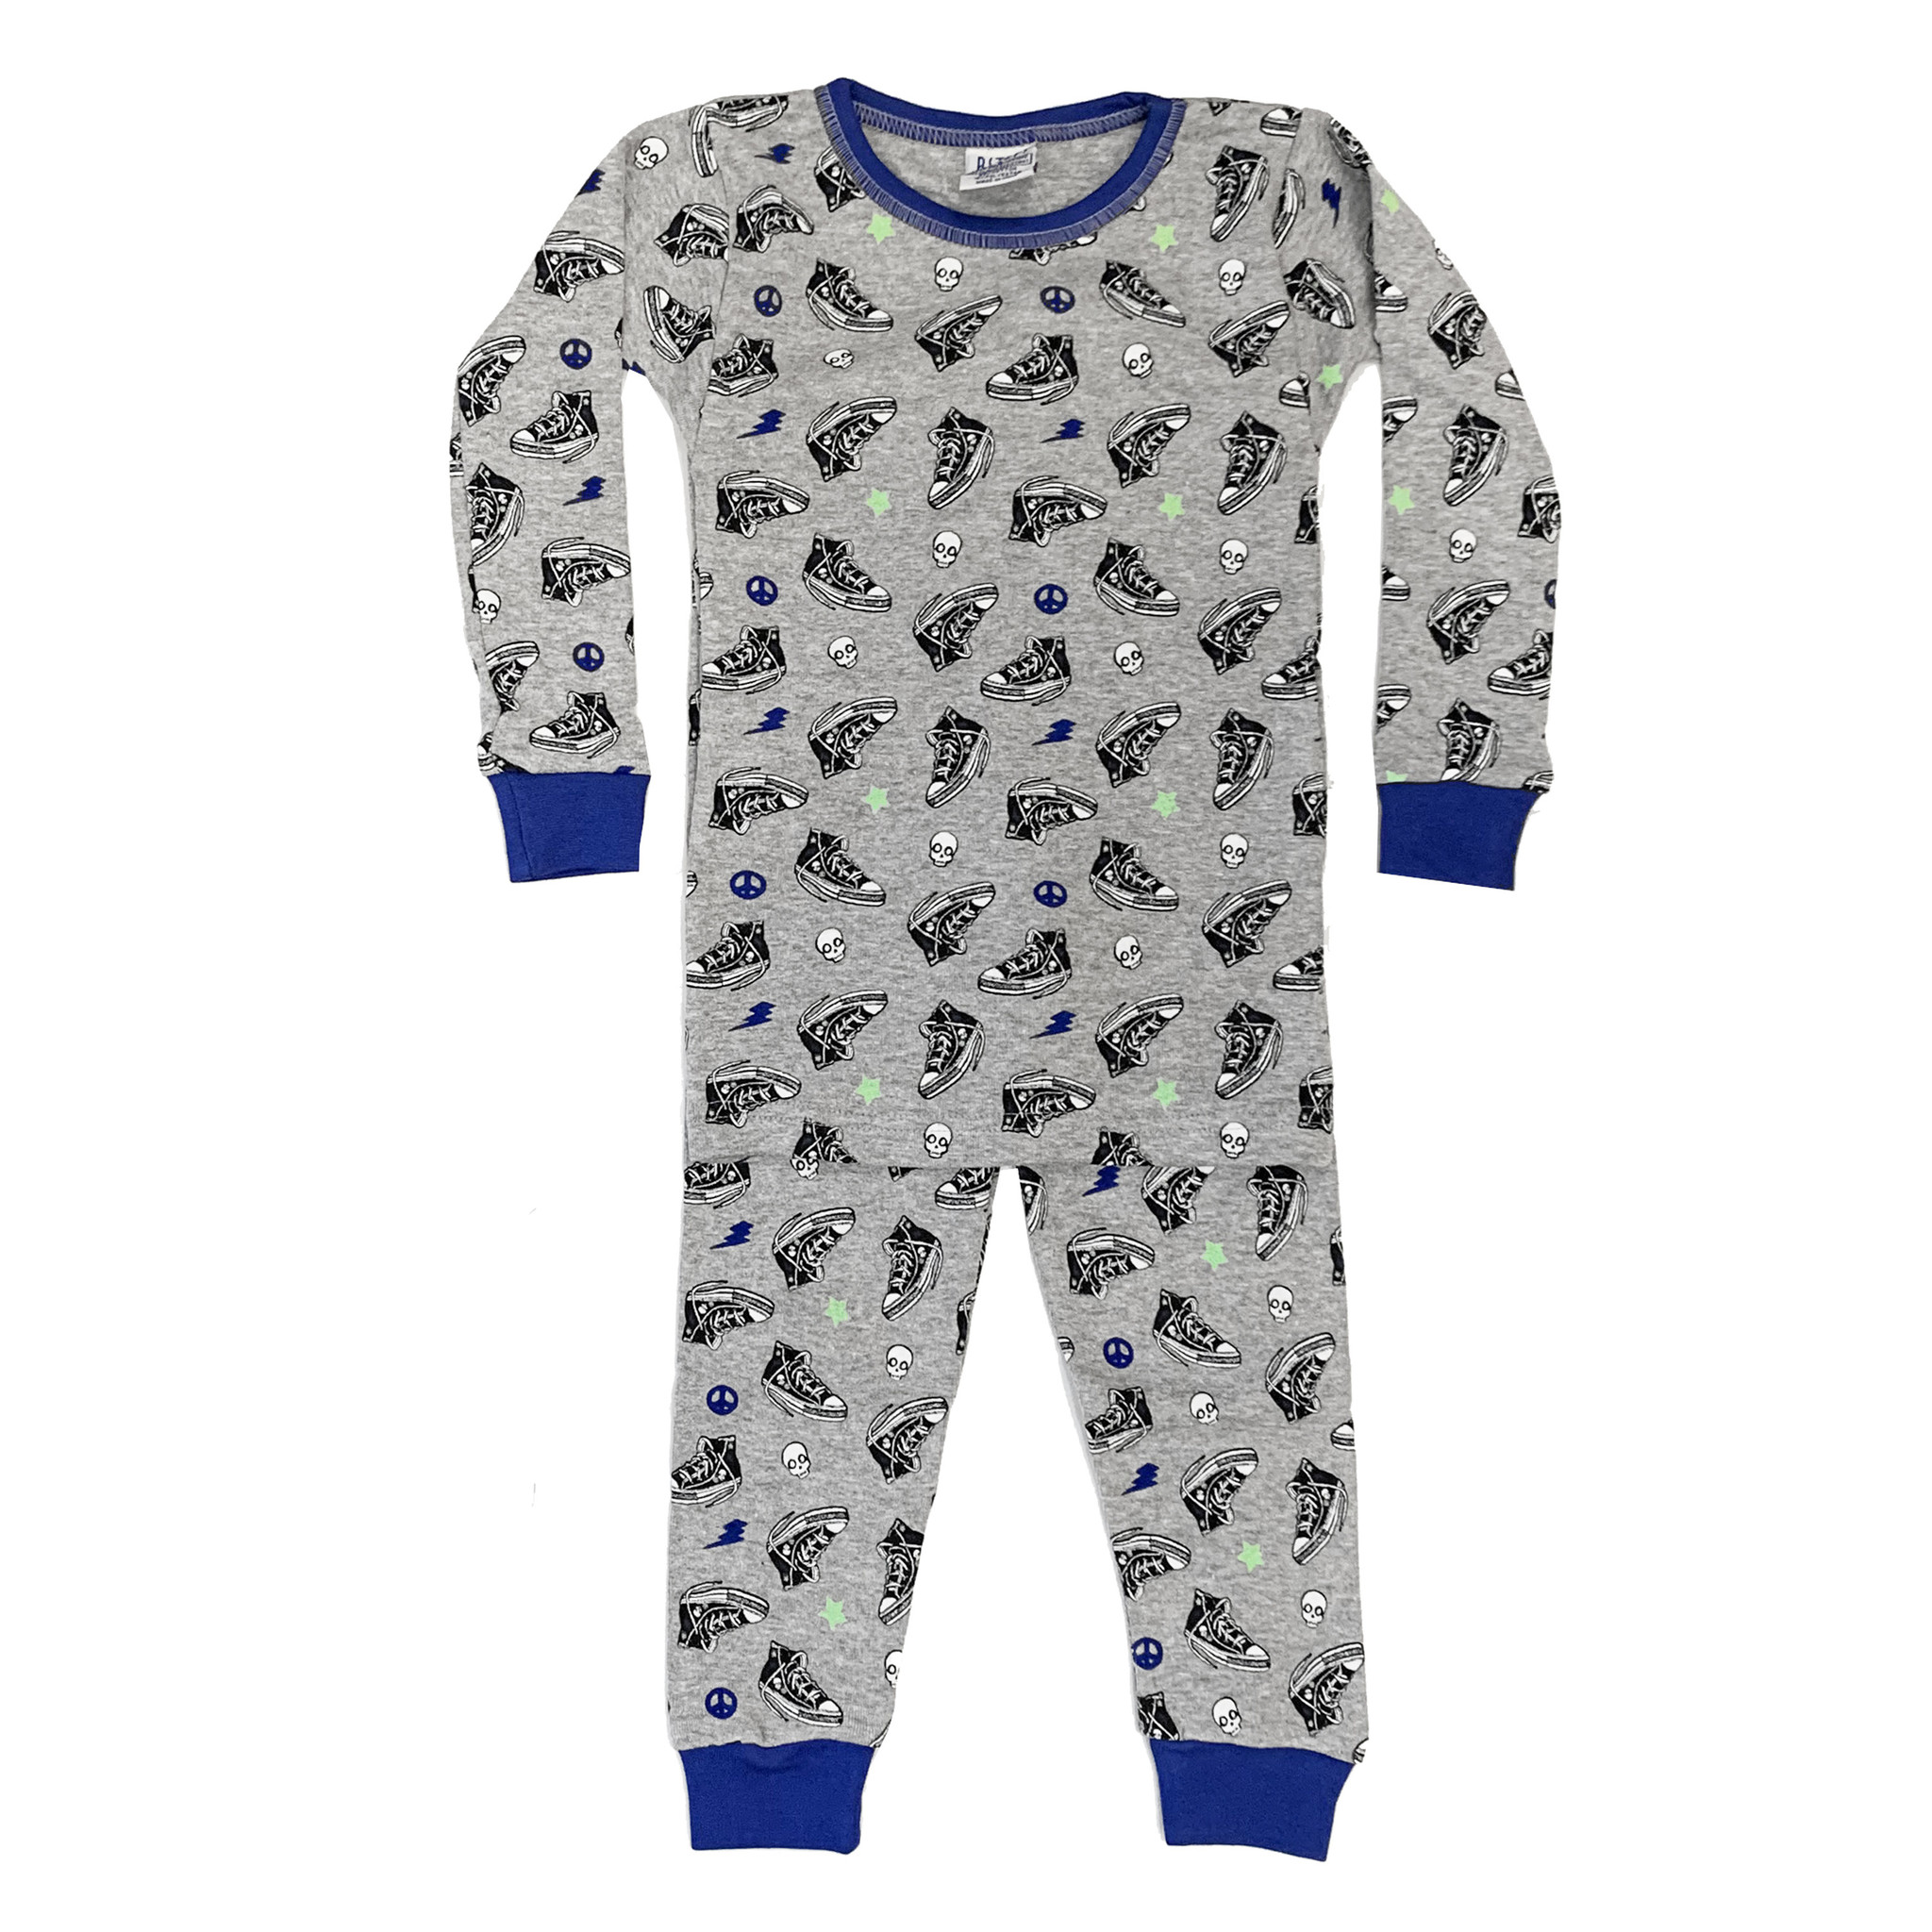 Baby Steps Grey Sneakers Infant PJ Set